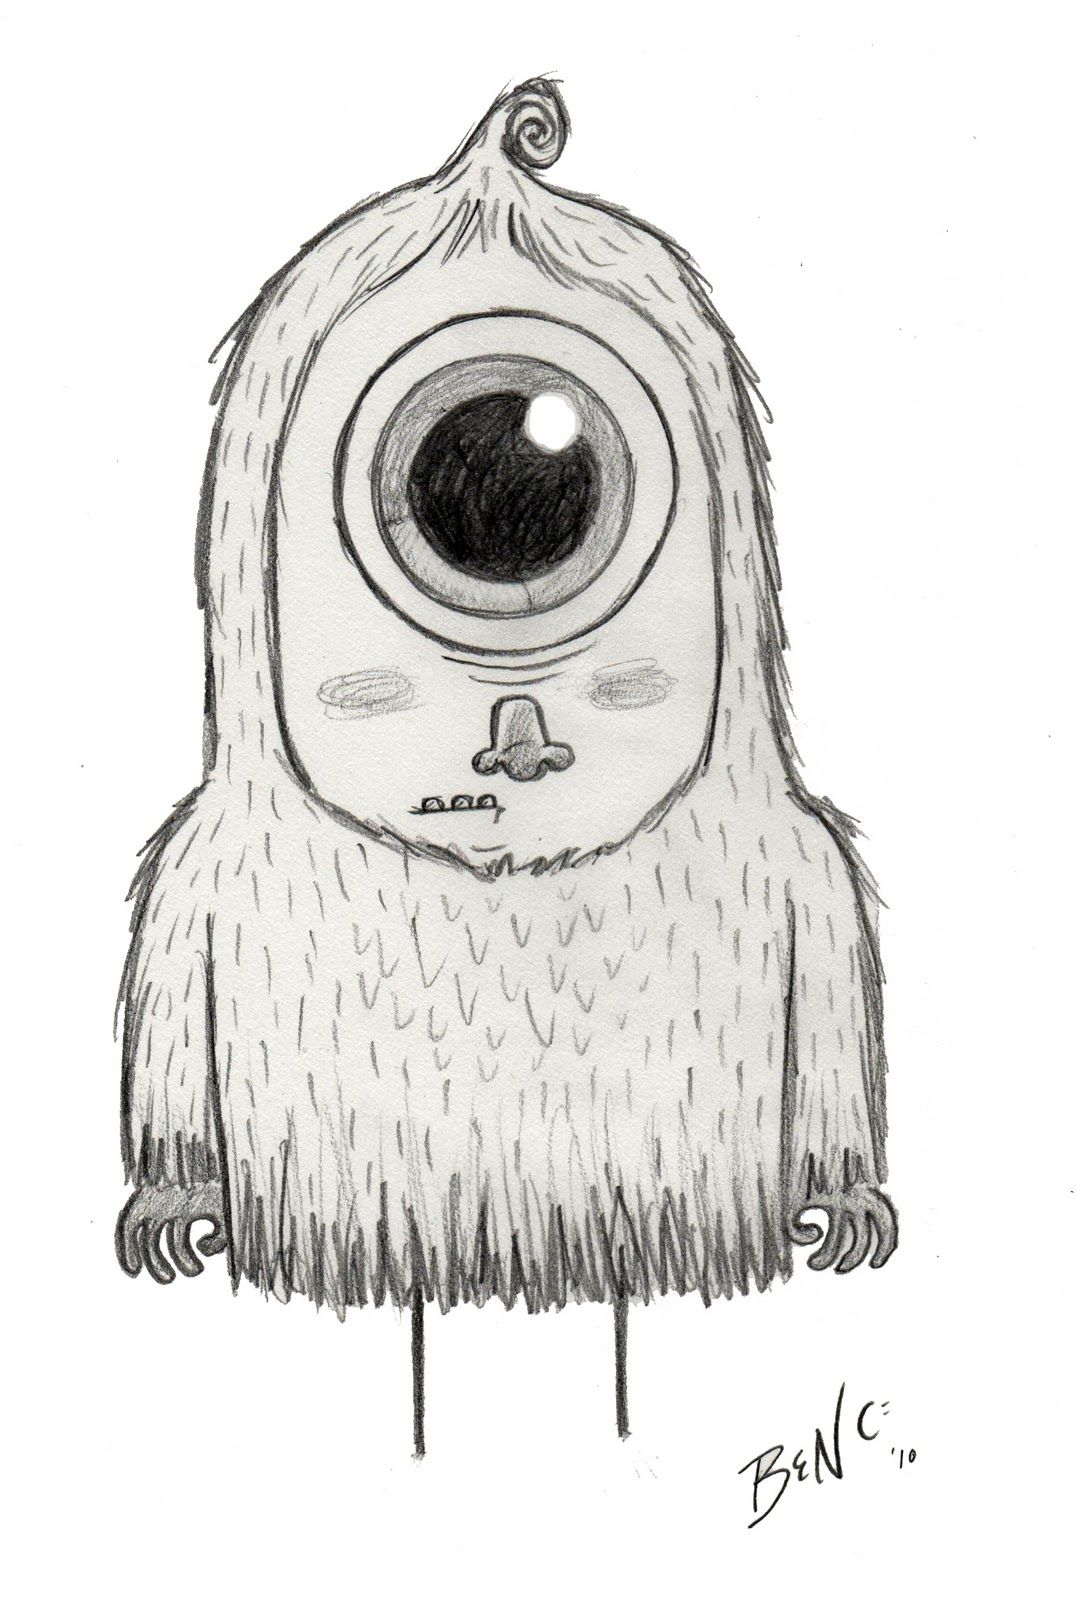 I love sketching monsters! I had a couple of great monster story ideas recently…